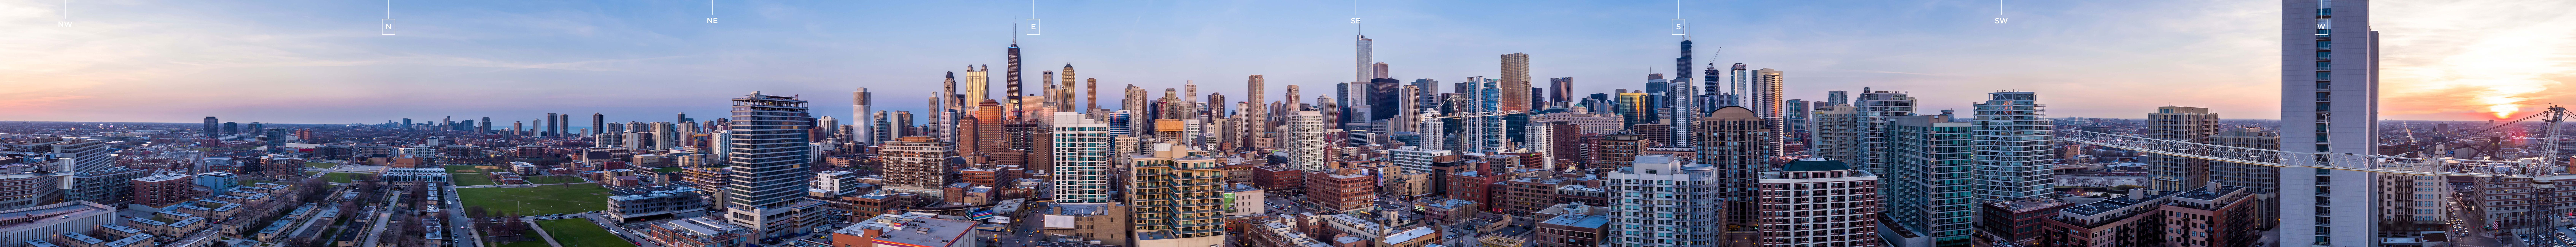 The Hudson 360° Views - SEE CHICAGO FROM A NEW PERSPECTIVE - floor 16 penthouse